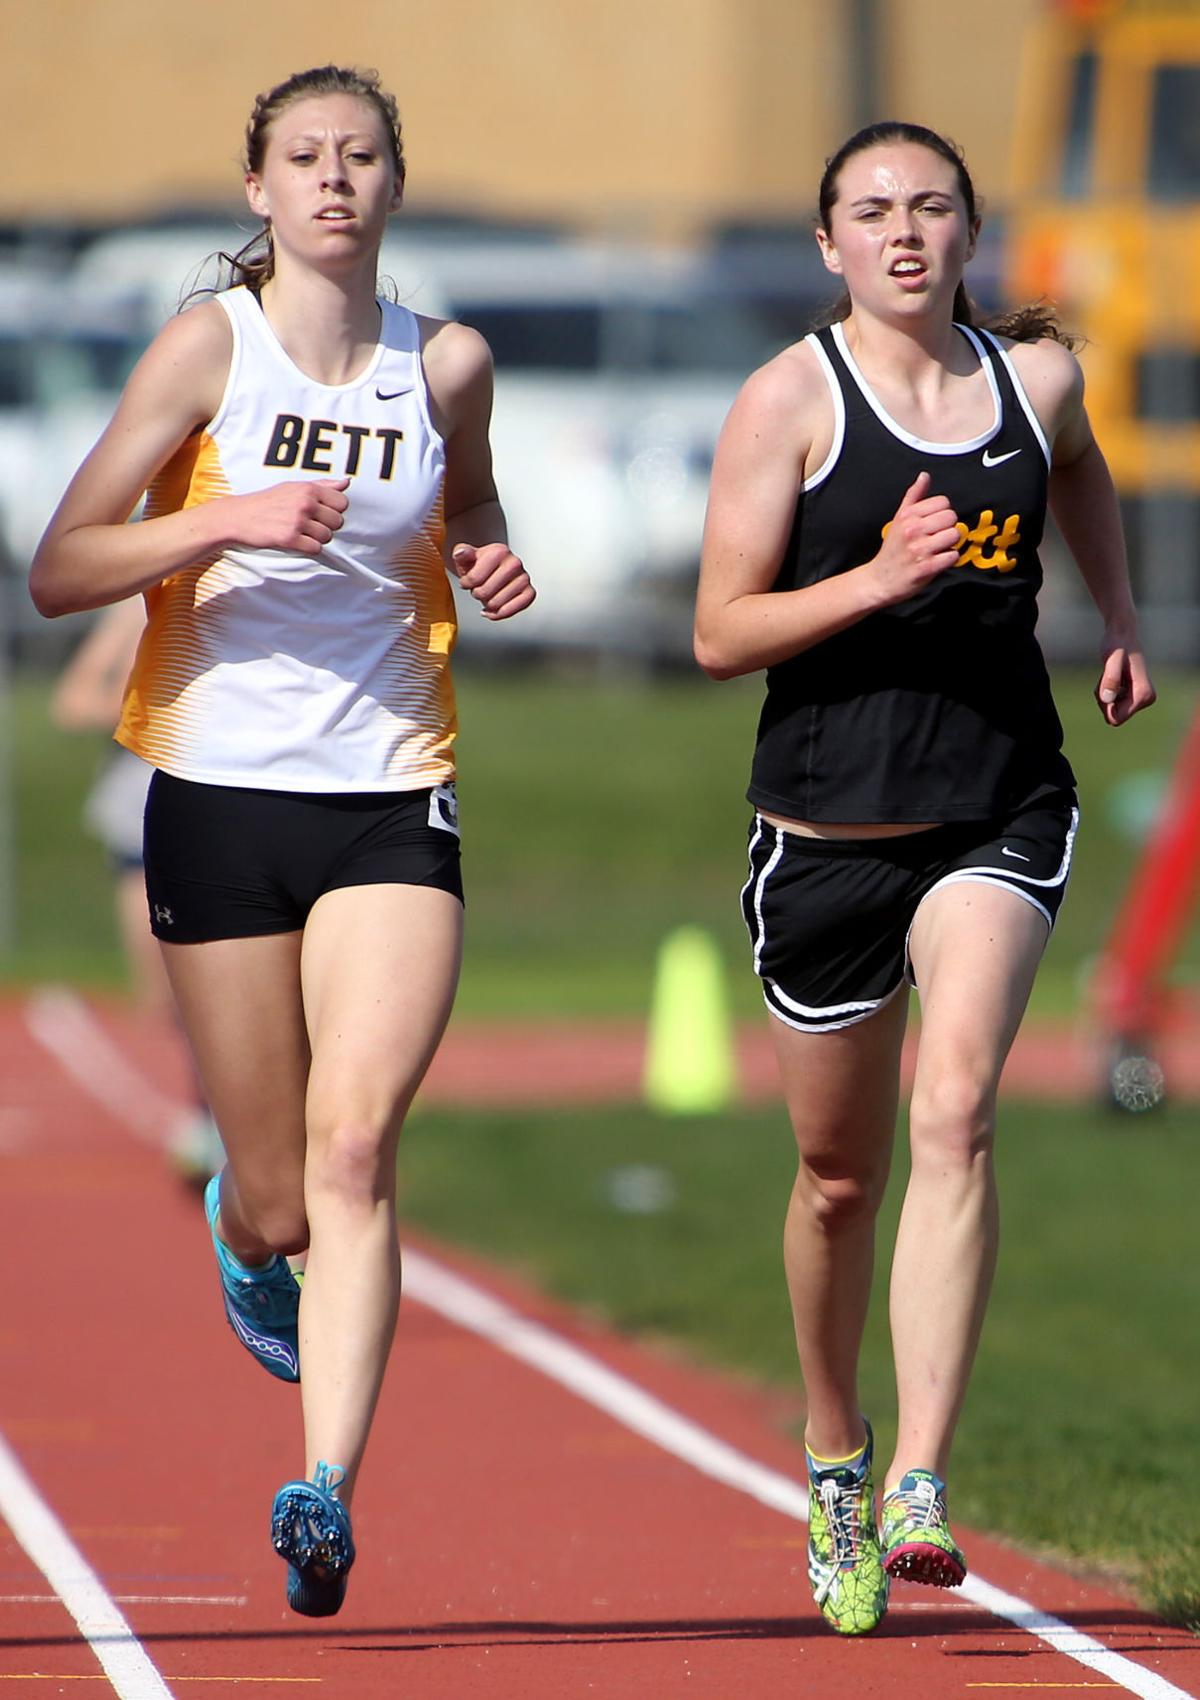 051117-Coed-State-Qualifying-Track-022